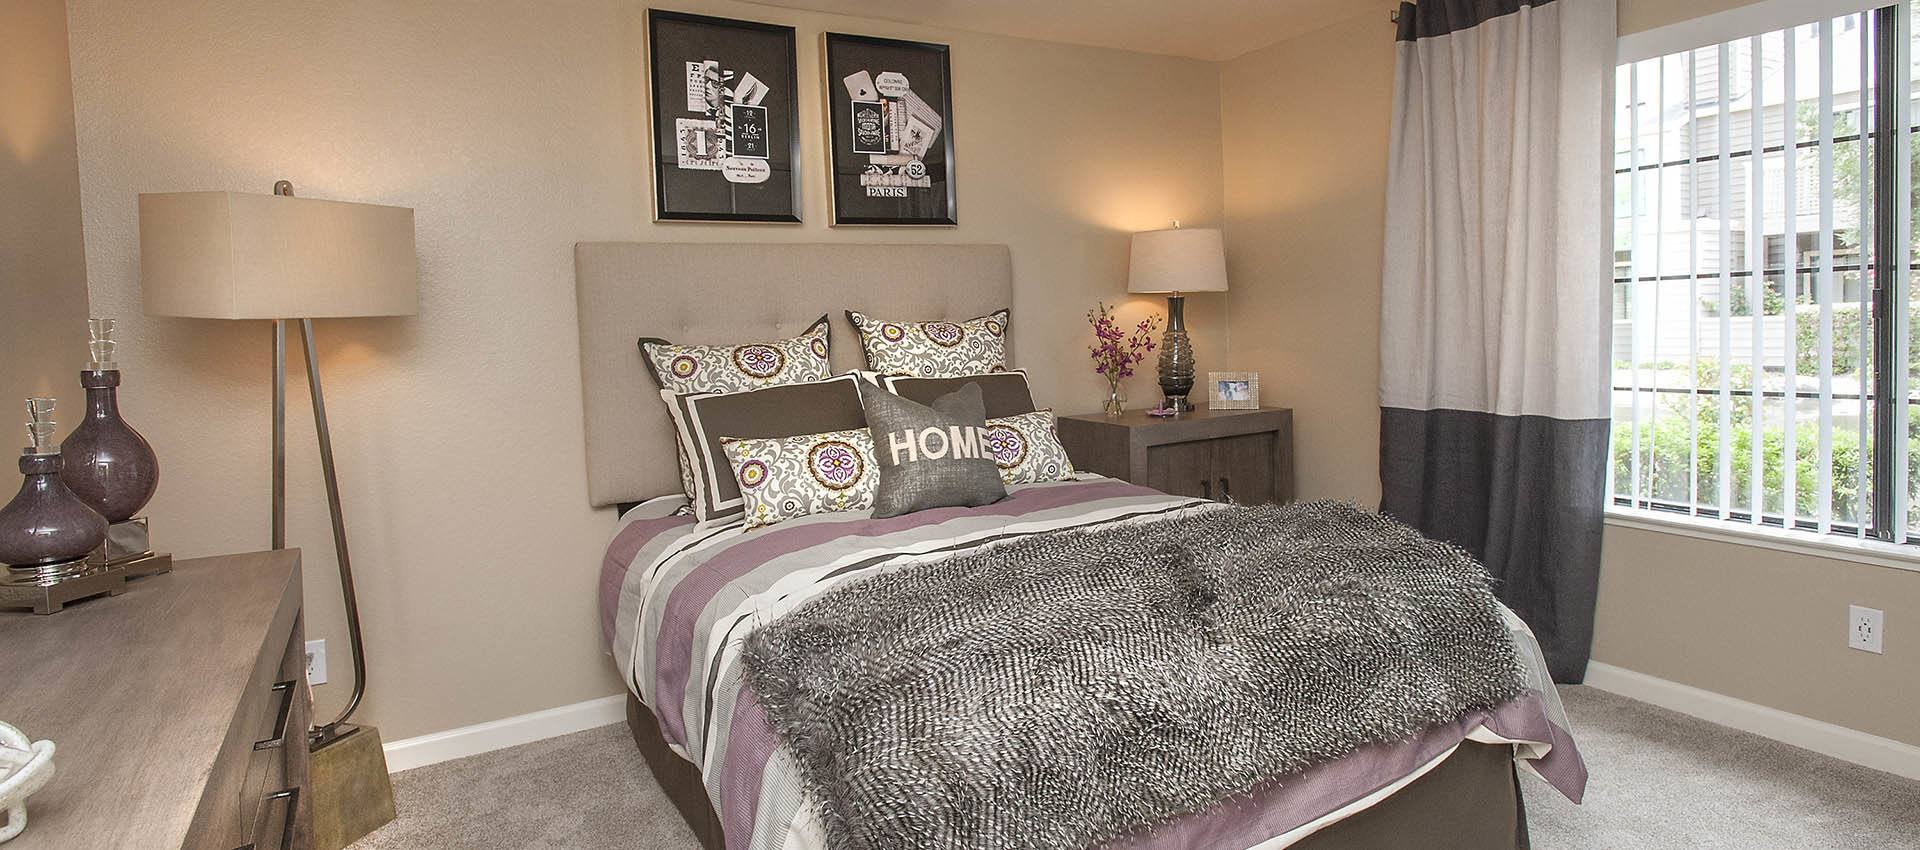 Large Bedroom With Modern Decor at Hidden Lake Condominium Rentals in Sacramento, CA